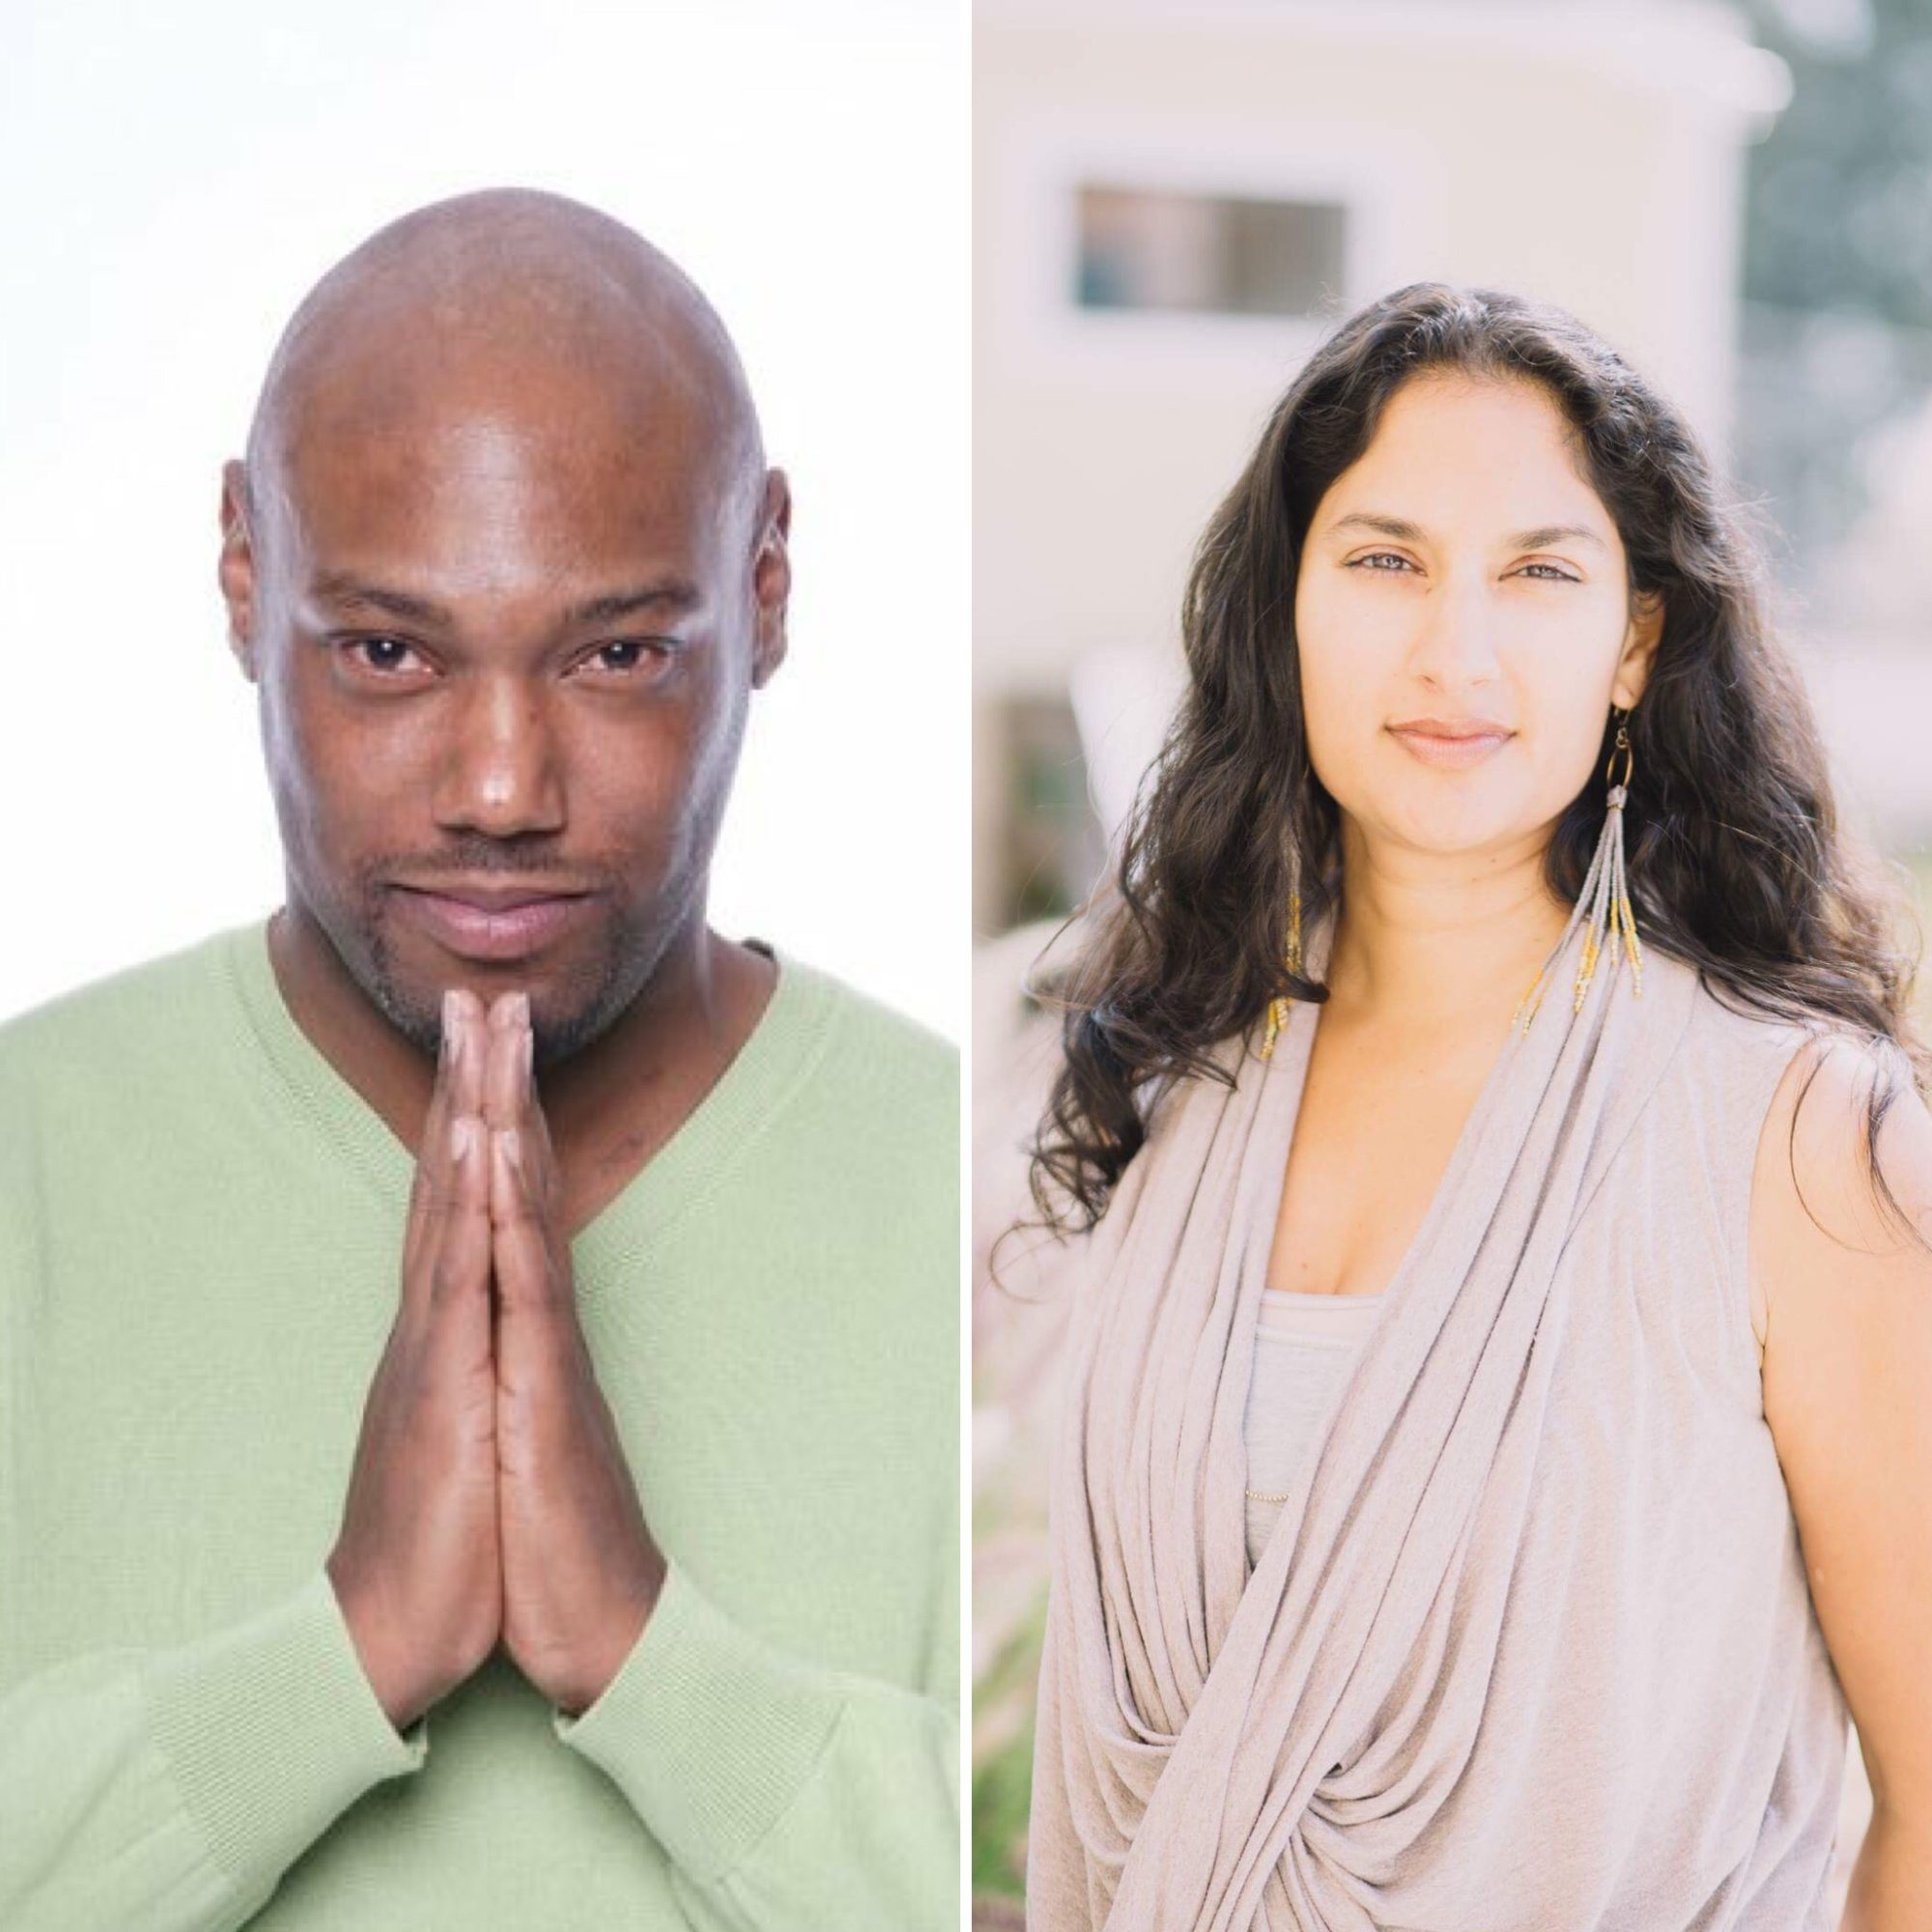 VLOG: Conversation with Gitanjali Hemp on soul alignment and integration